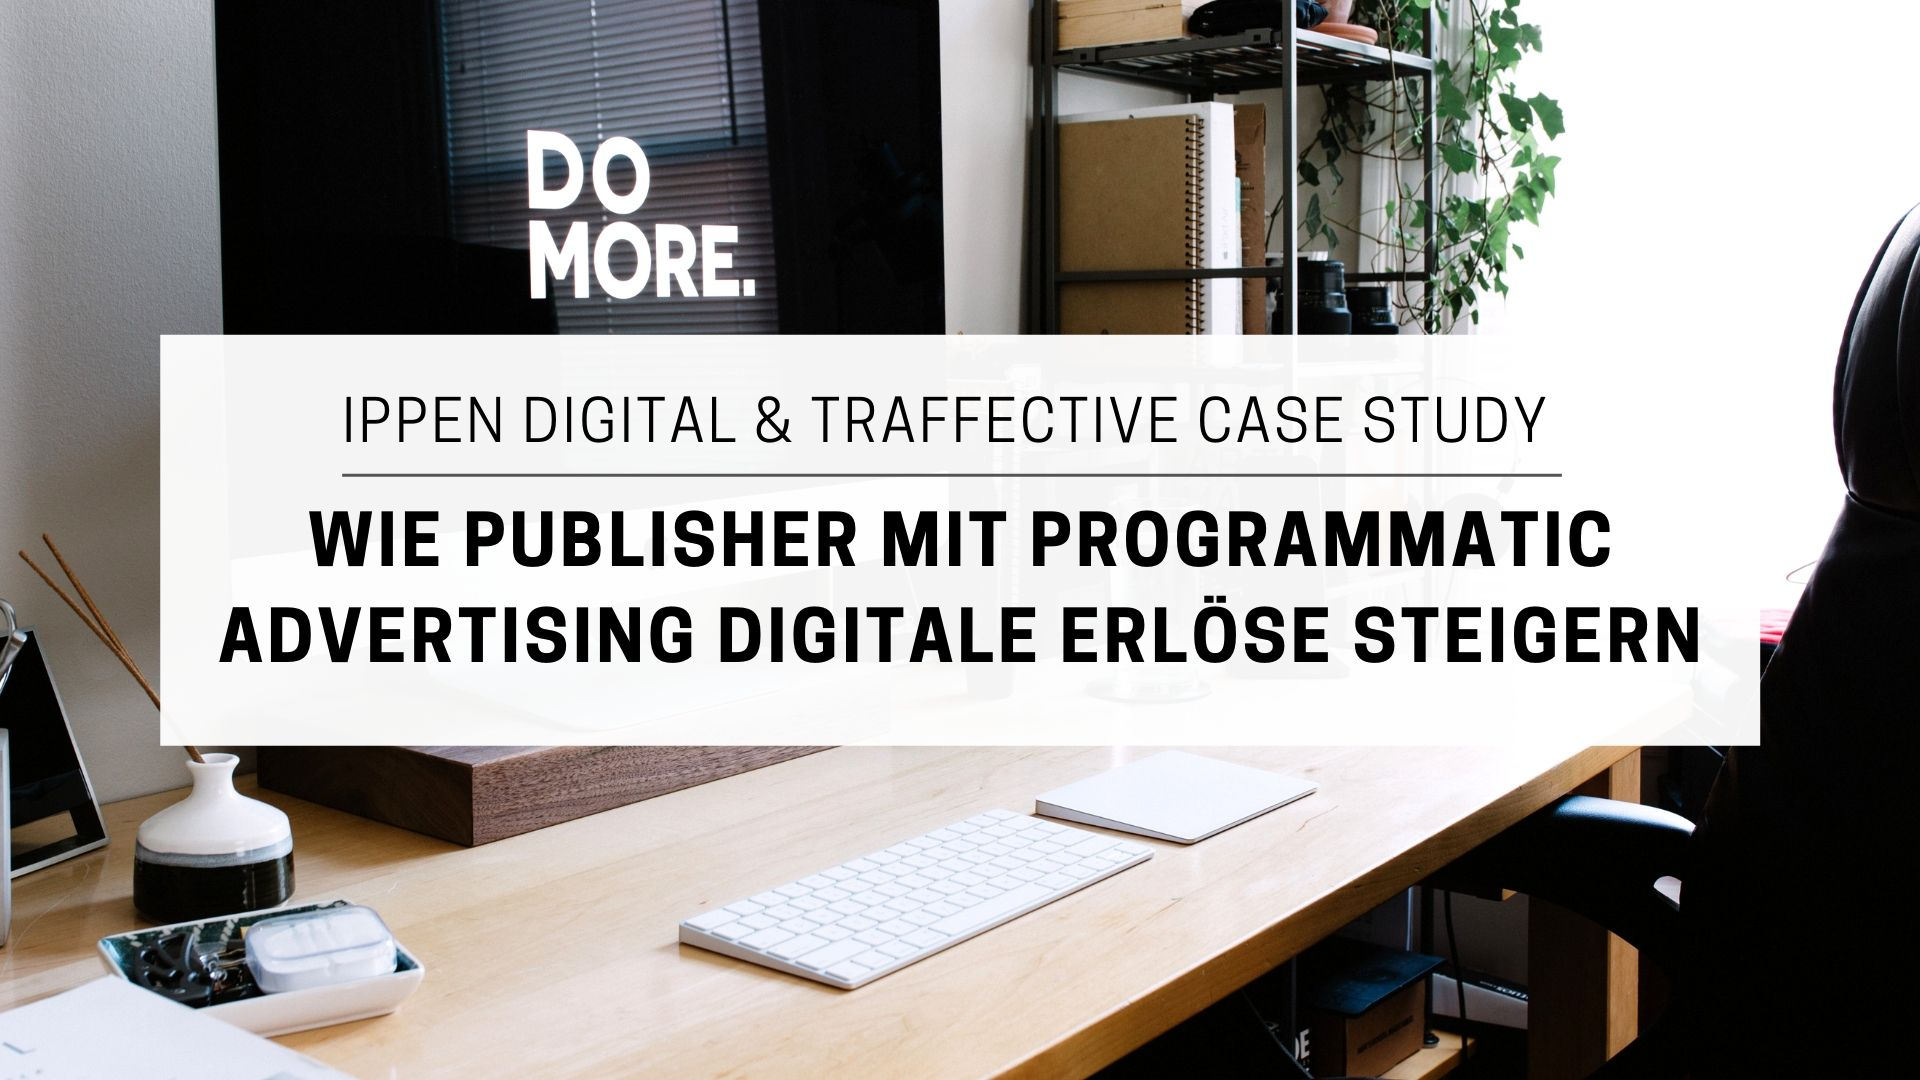 Programmatic Advertising Case Study: Ippen Digital & Traffective